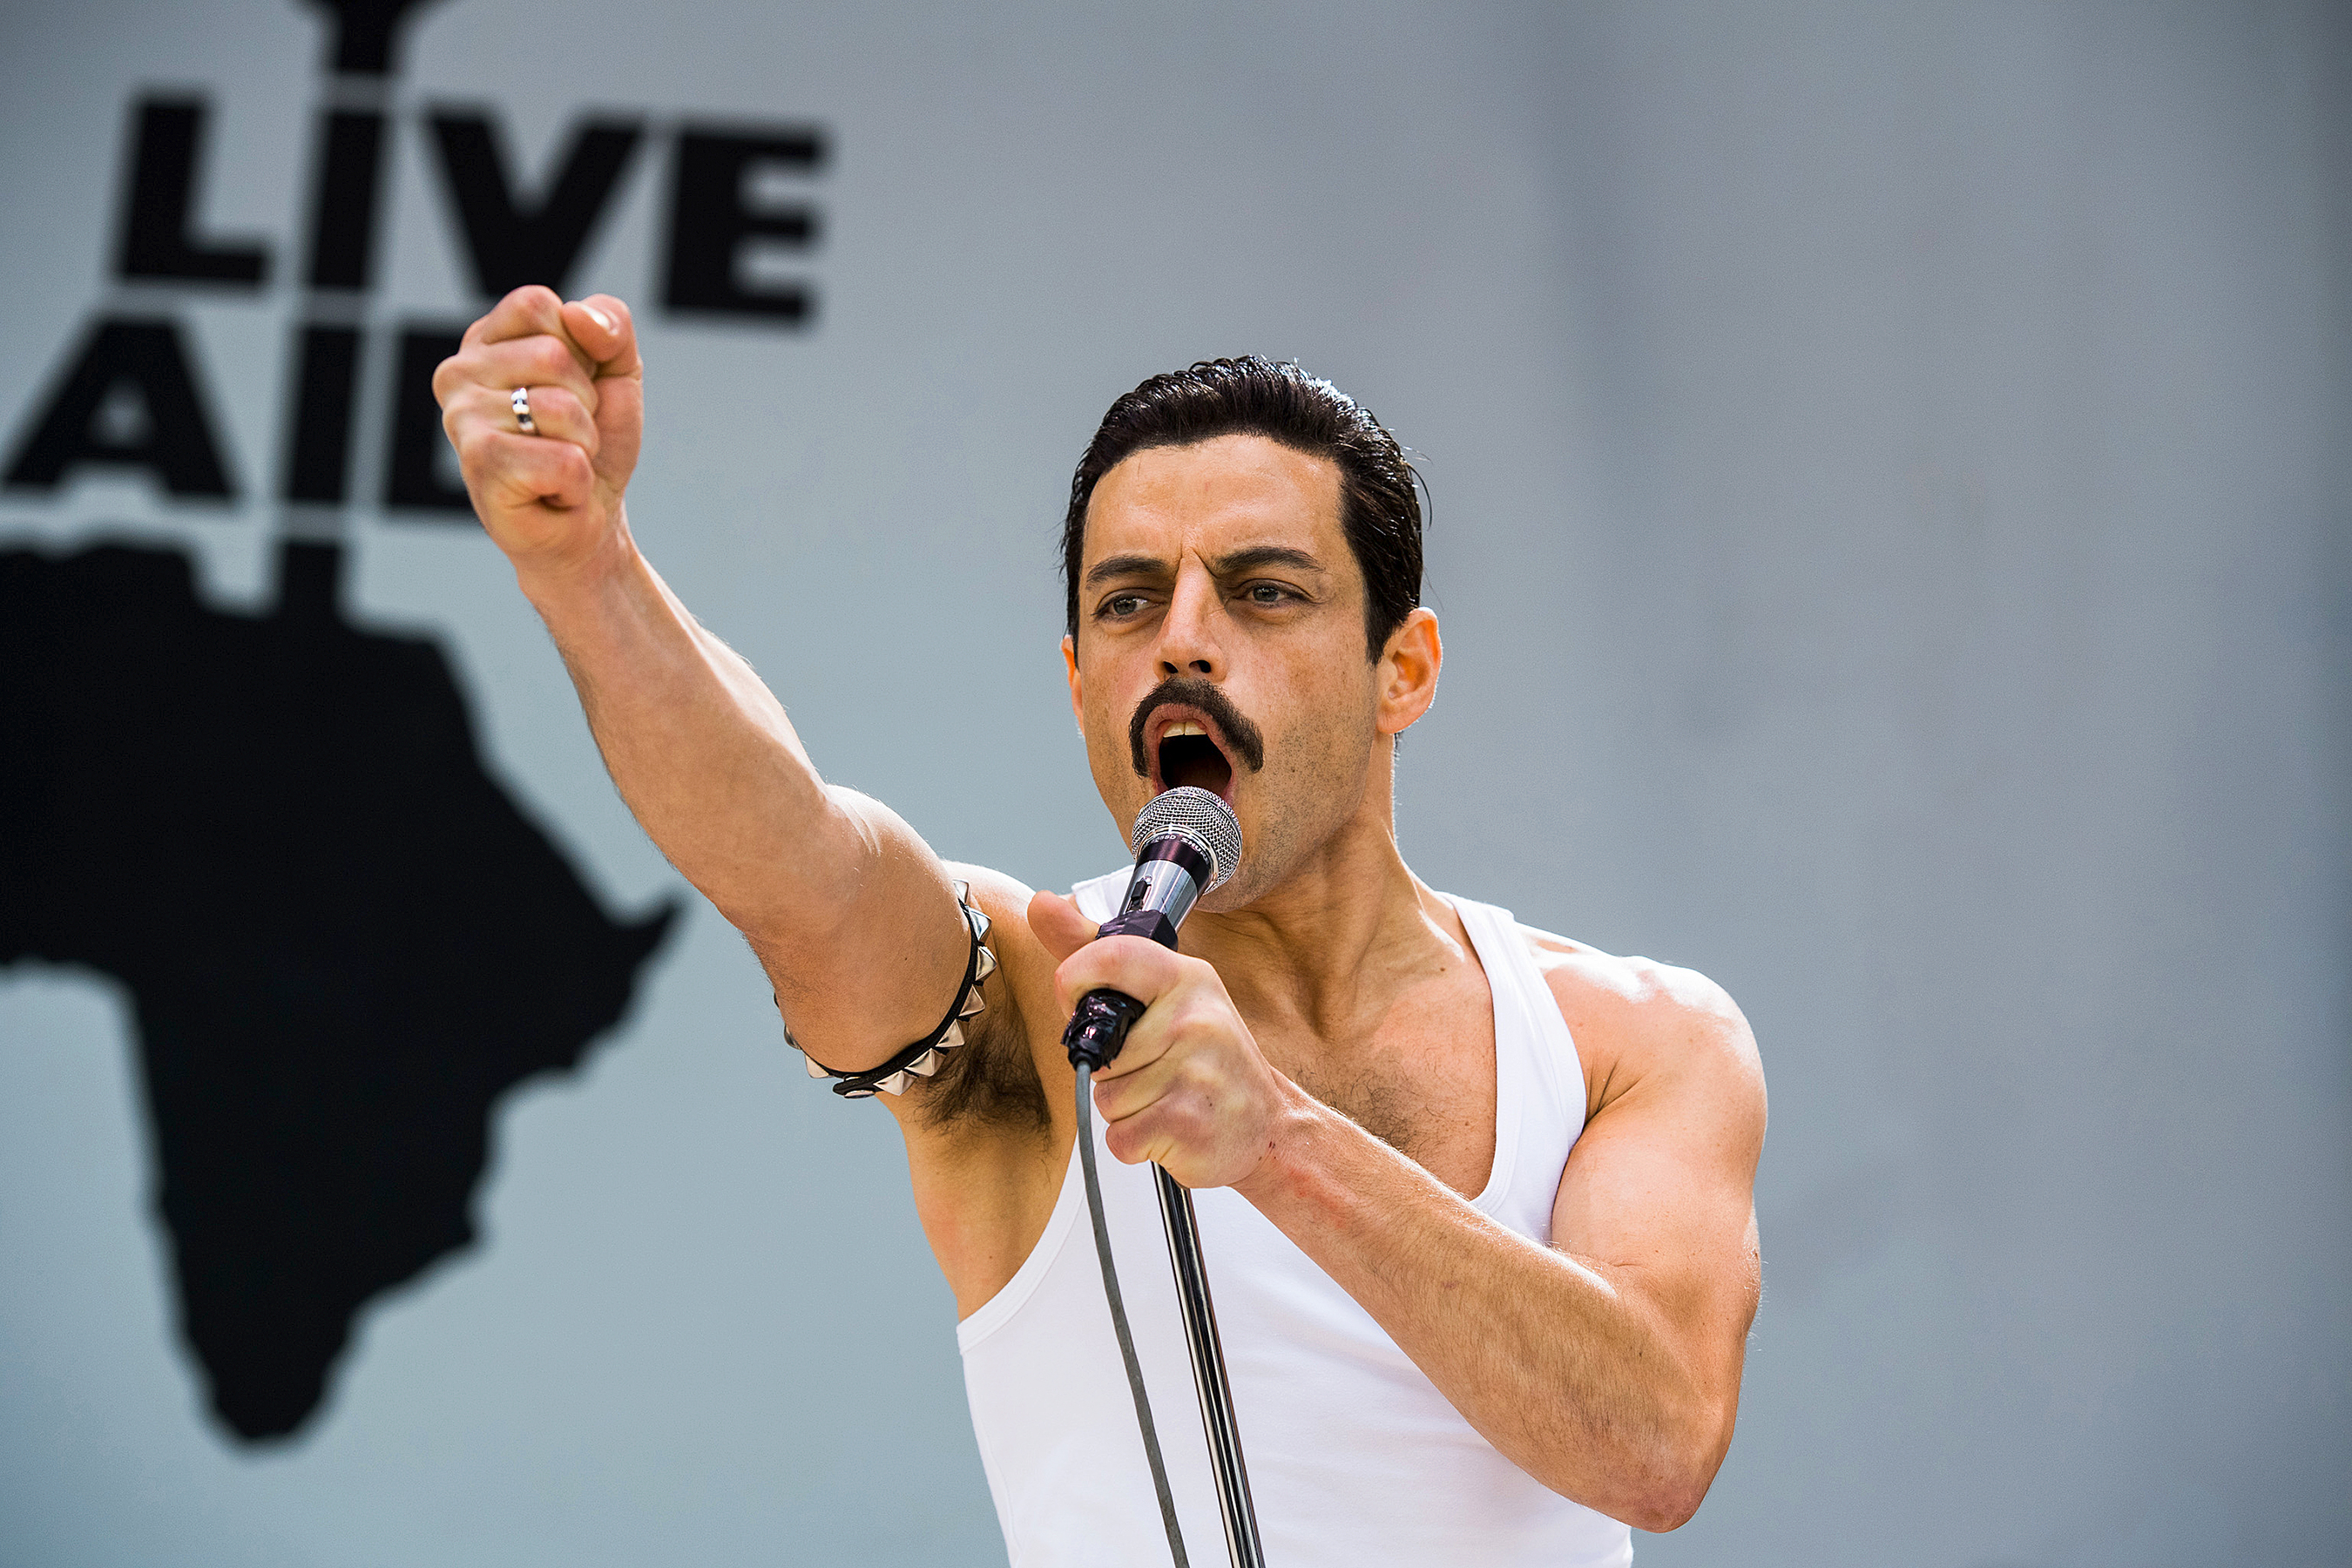 Rami Malek plays Freddie Mercury in Bohemian Rhapsody, which is up for Best Picture at the Oscars.